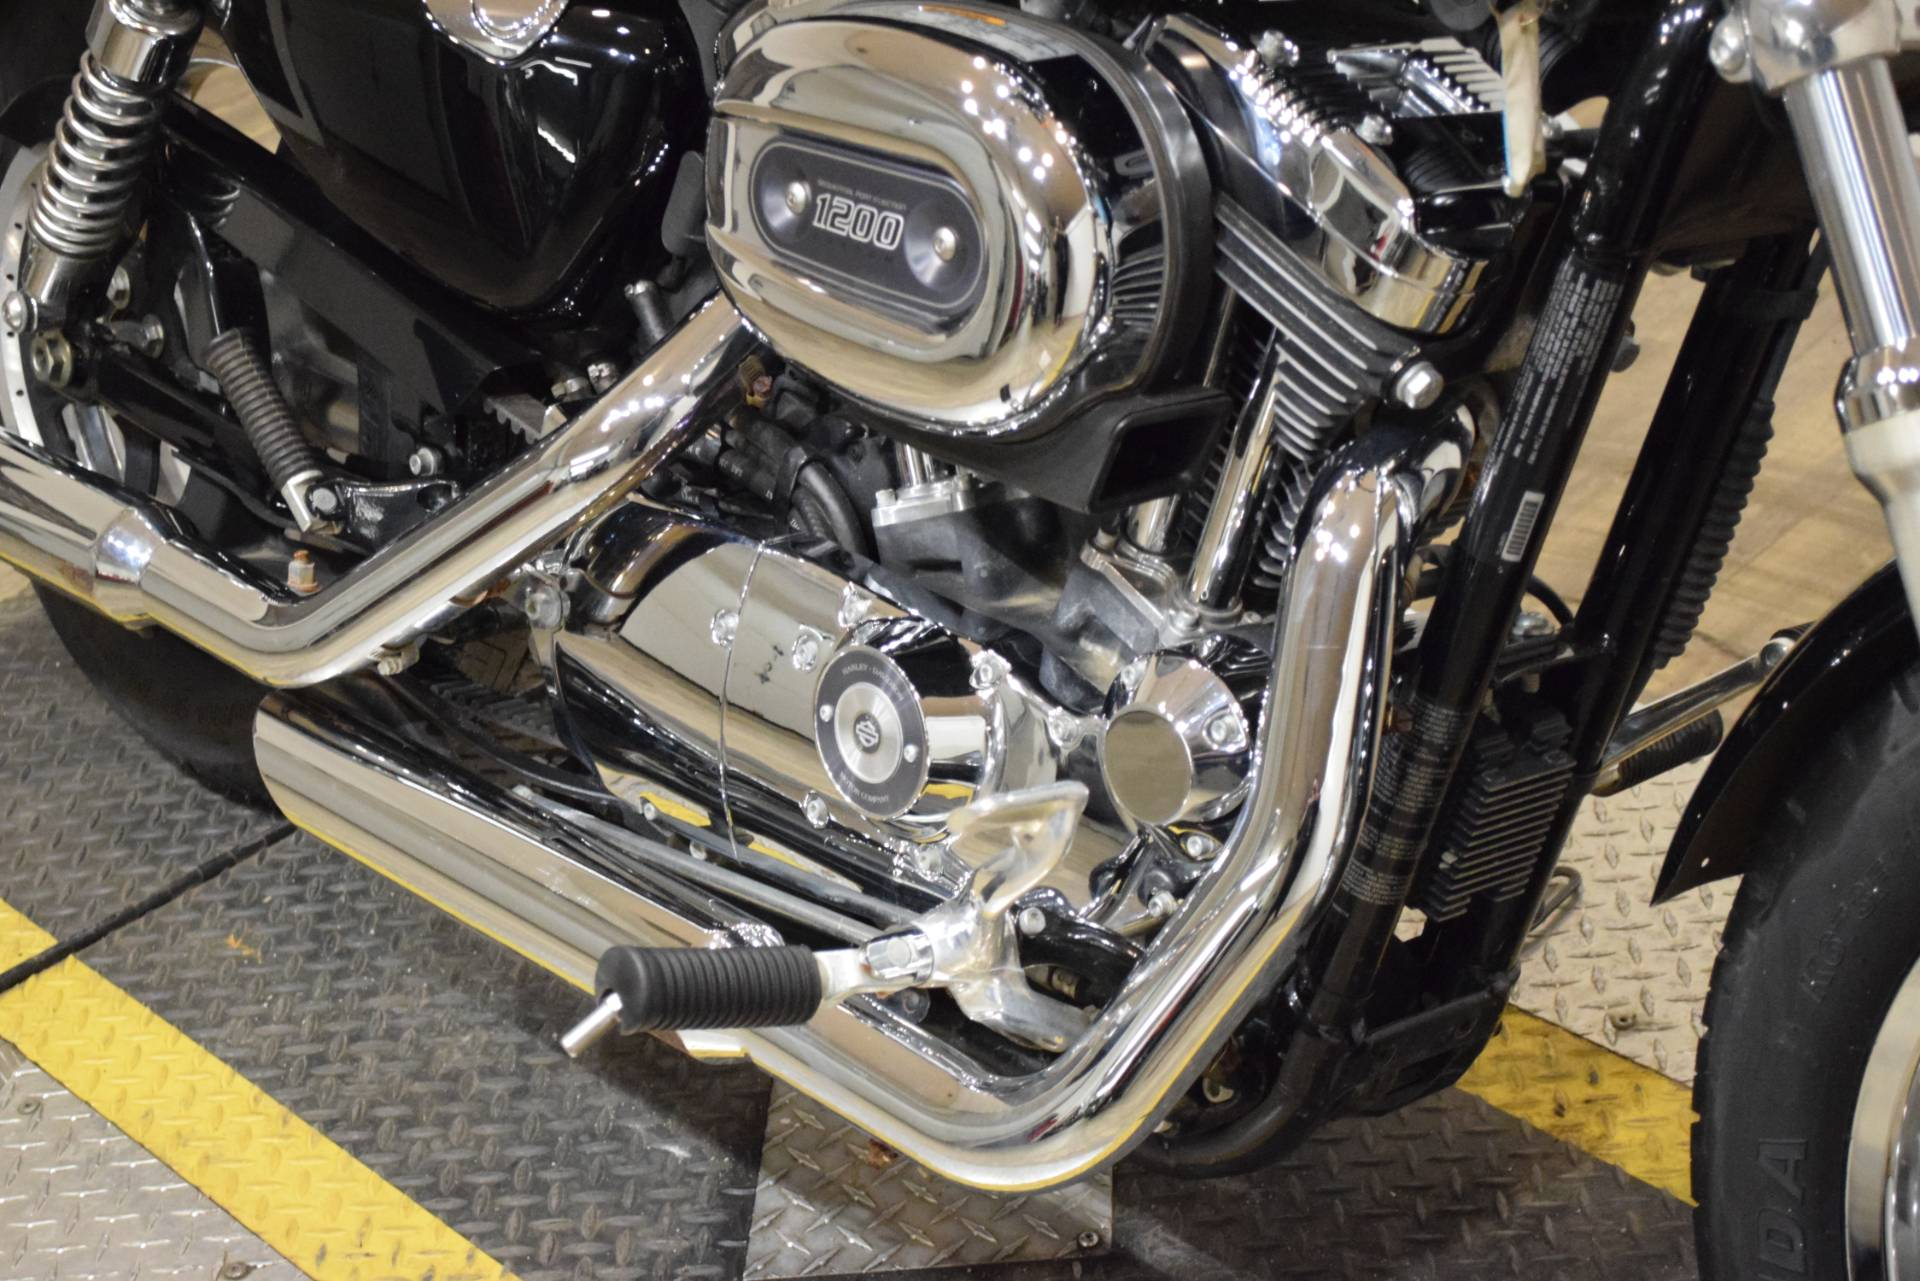 2013 Harley-Davidson Sportster® 1200 Custom in Wauconda, Illinois - Photo 4